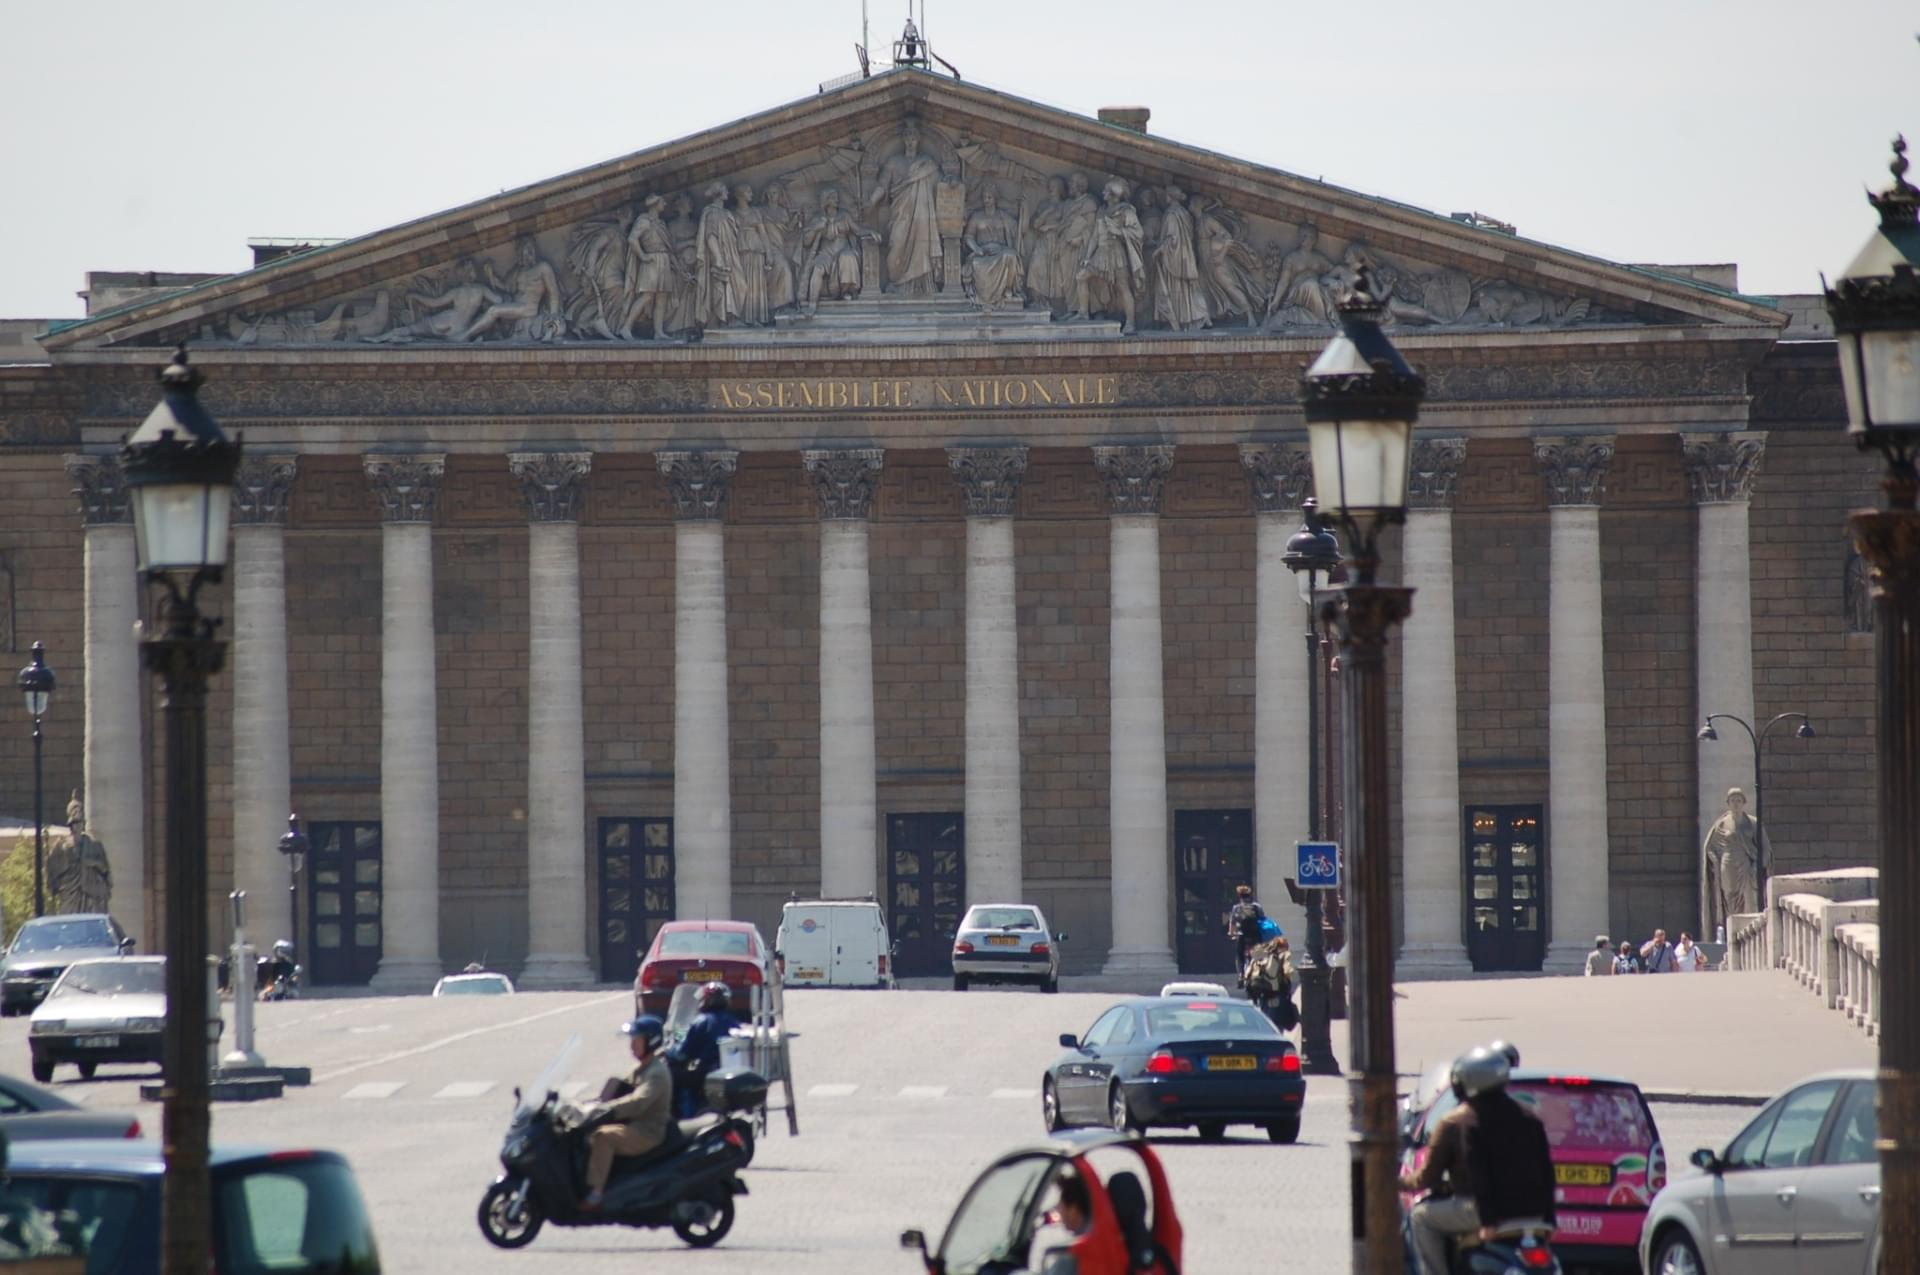 assemblee-nationale-palais-bourbon